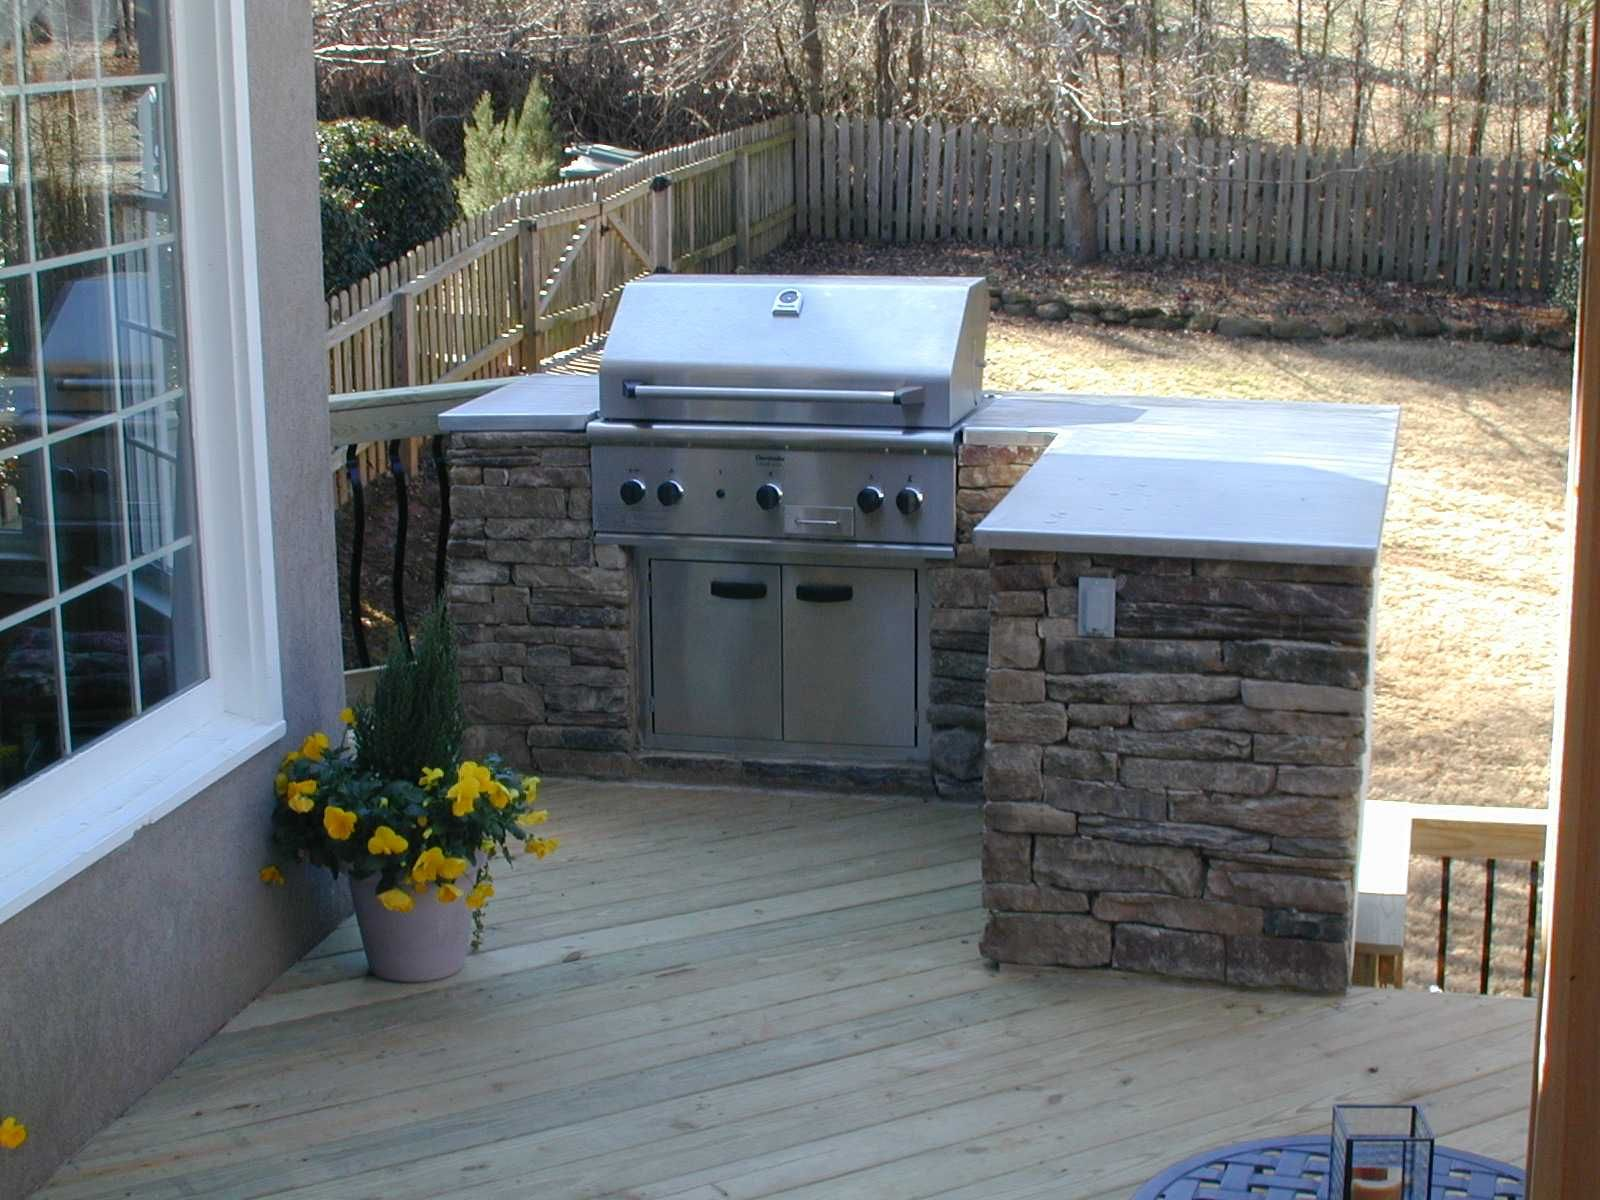 Outdoor Küche Holzofen Built In Grill On Wood Deck Deck And Patio Ideas